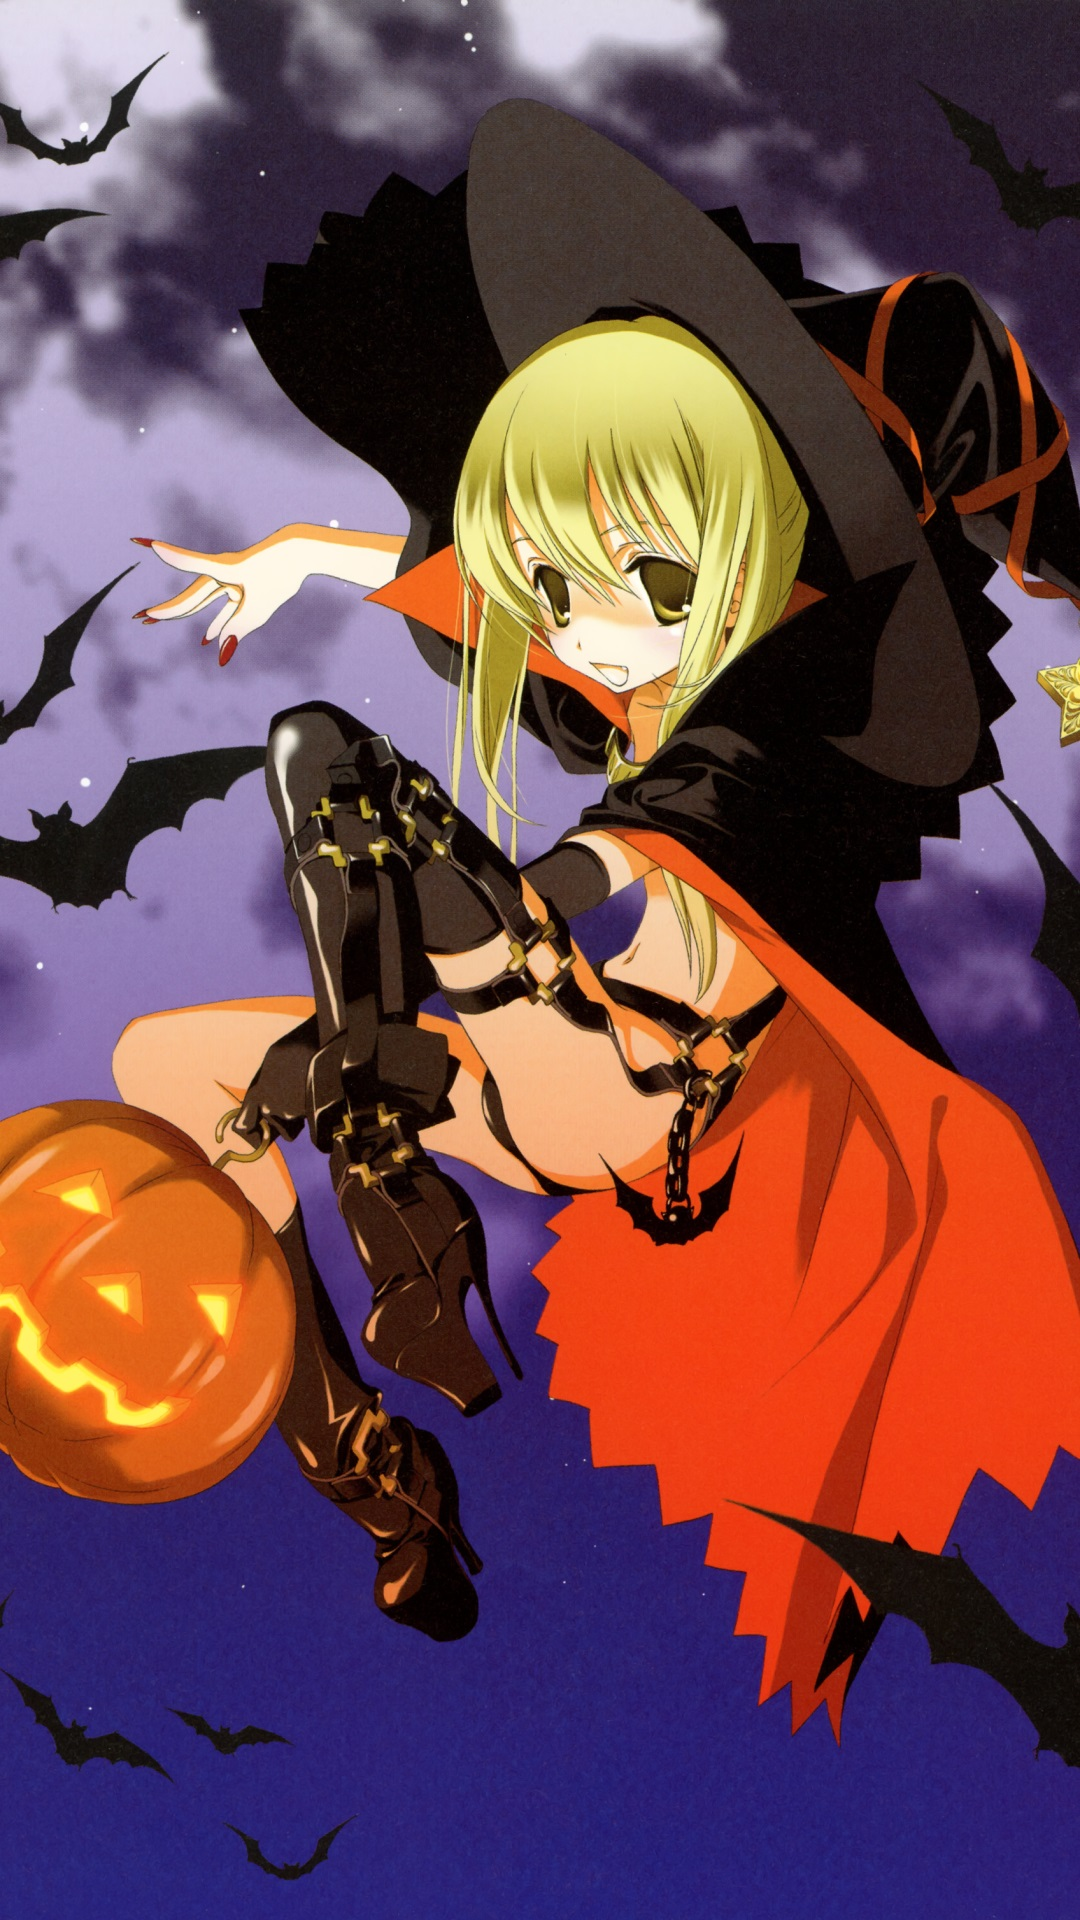 Anime Halloween 2013Sony Xperia Z wallpaper1080x1920 1 1080x1920